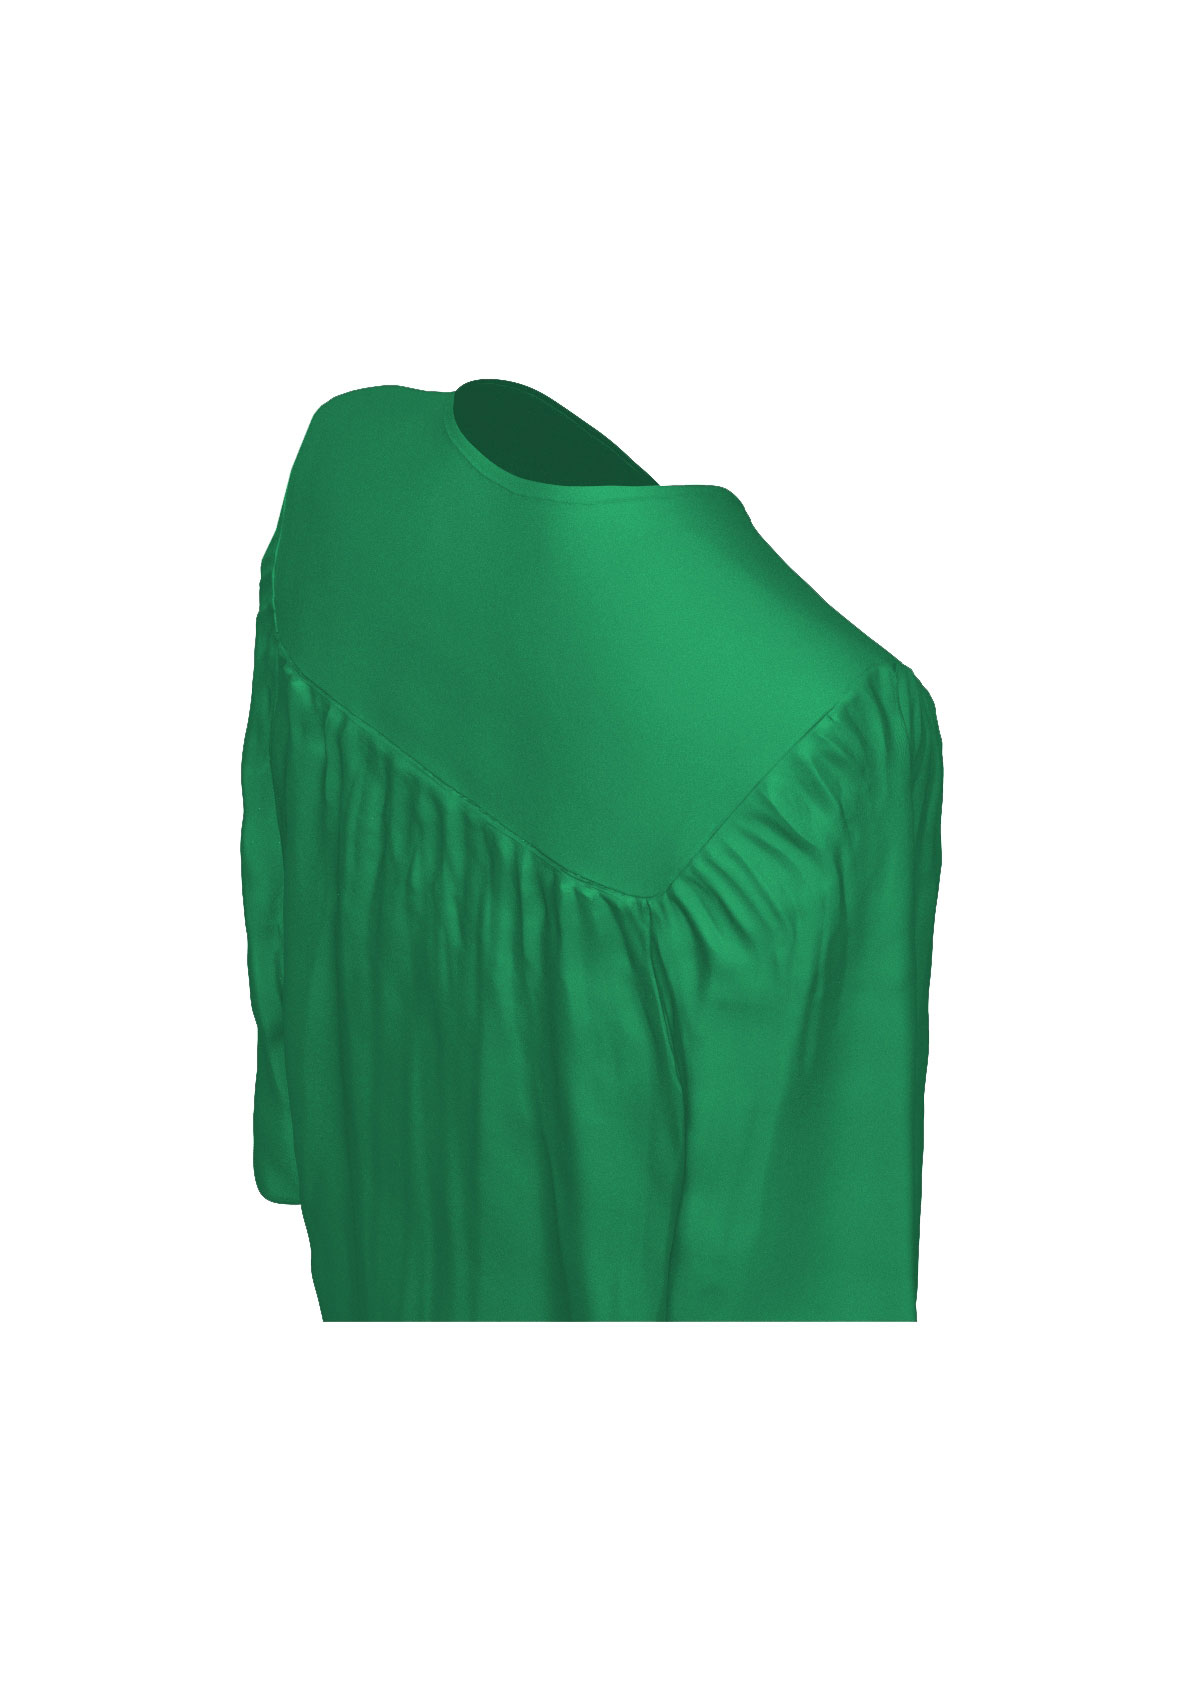 MATTE EMERALD GREEN CAP AND GOWN-rs4251465611331